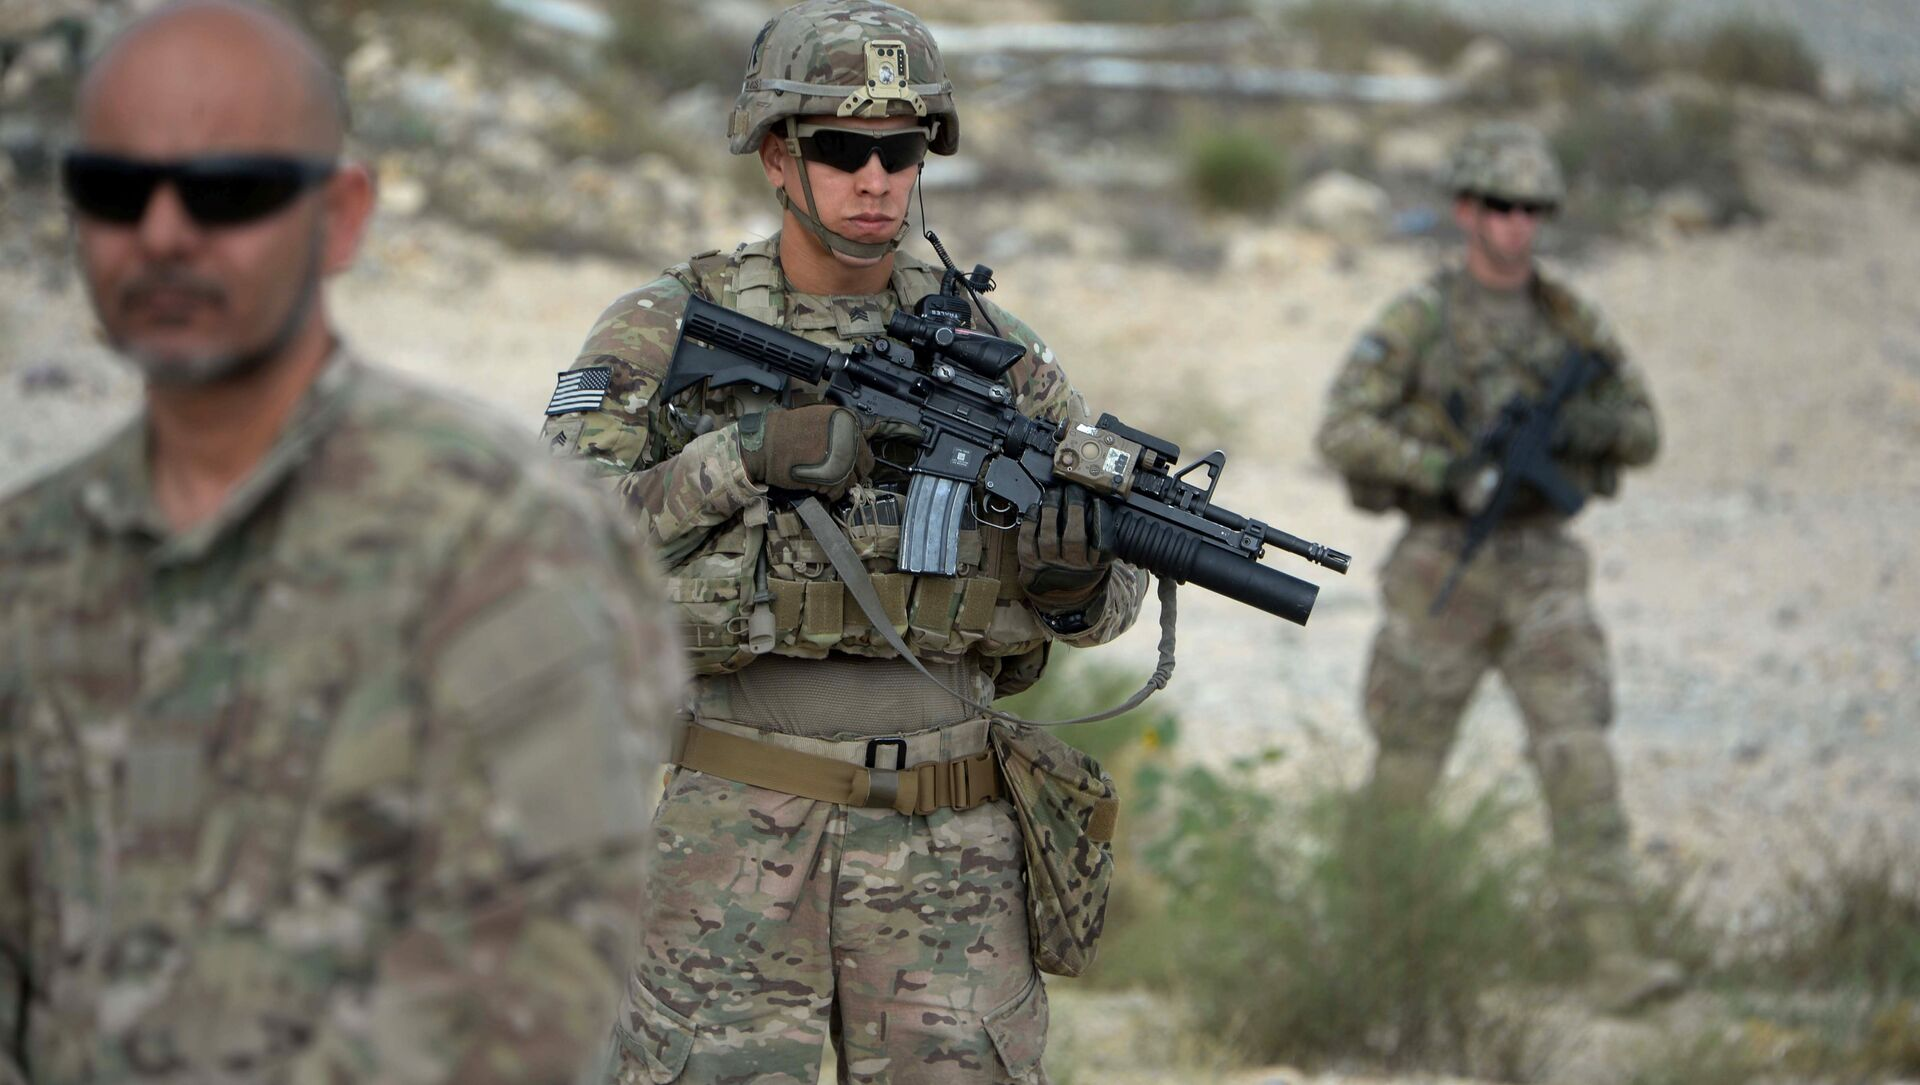 US soldiers part of NATO patrol during the final day of a month long anti-Taliban operation by the Afghan National Army (ANA) in various parts of eastern Nangarhar province, at an Afghan National Army base in Khogyani district on August 30, 2015 - Sputnik International, 1920, 19.08.2021